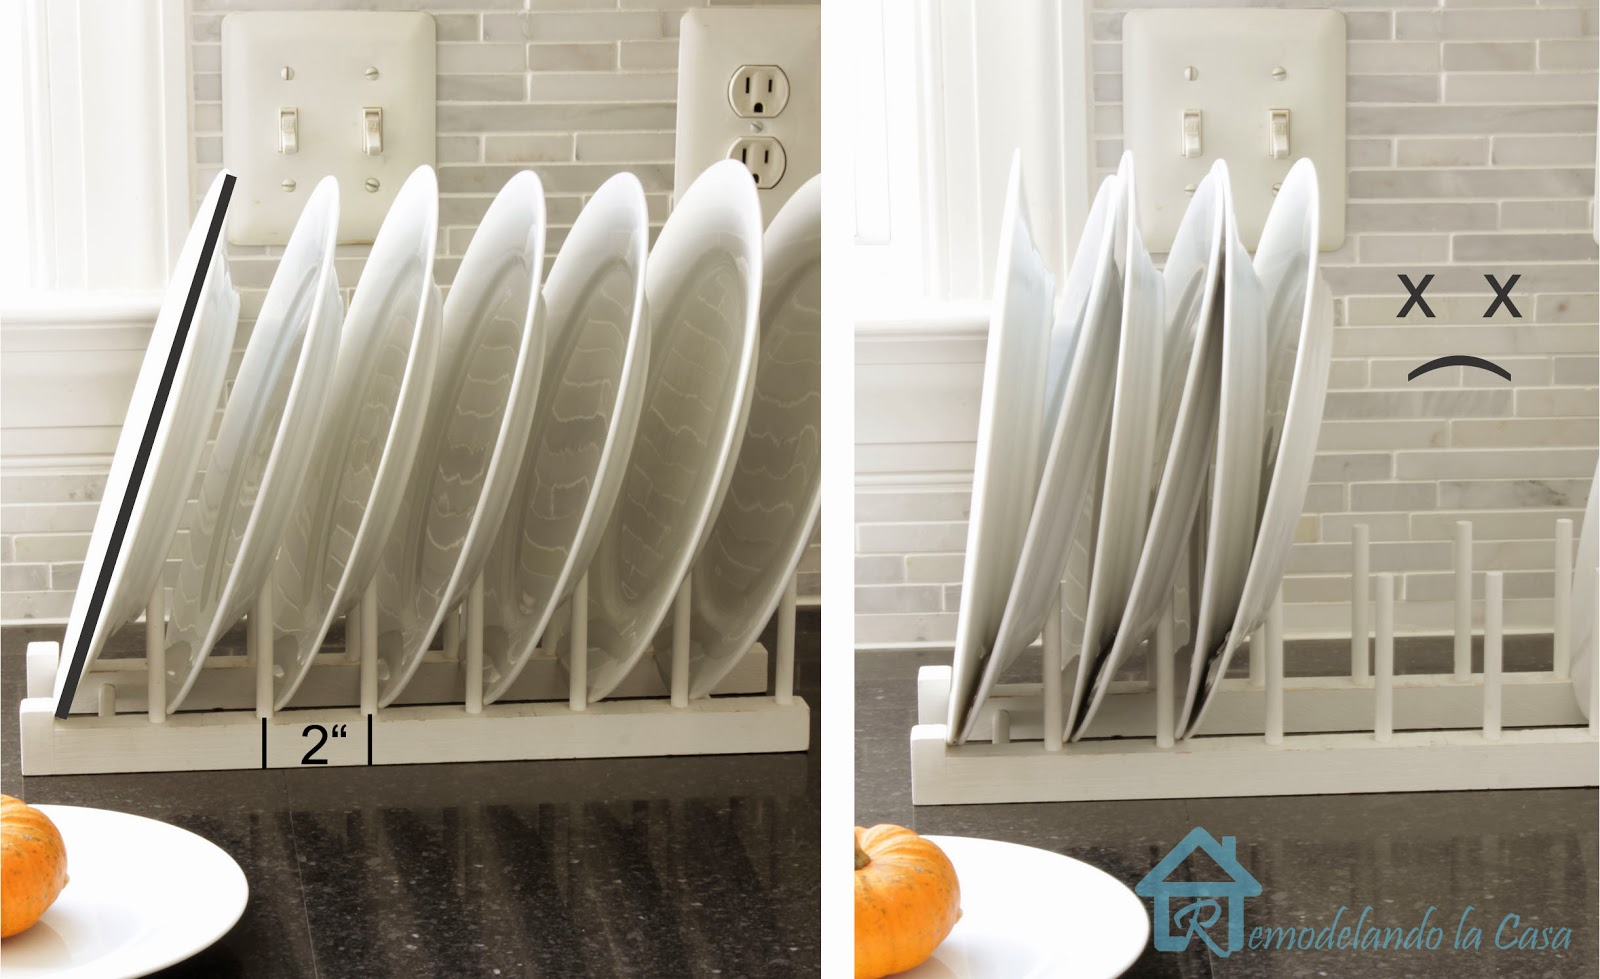 Easy to Build Plate Rack & Easy to Build Plate Rack - Remodelando la Casa